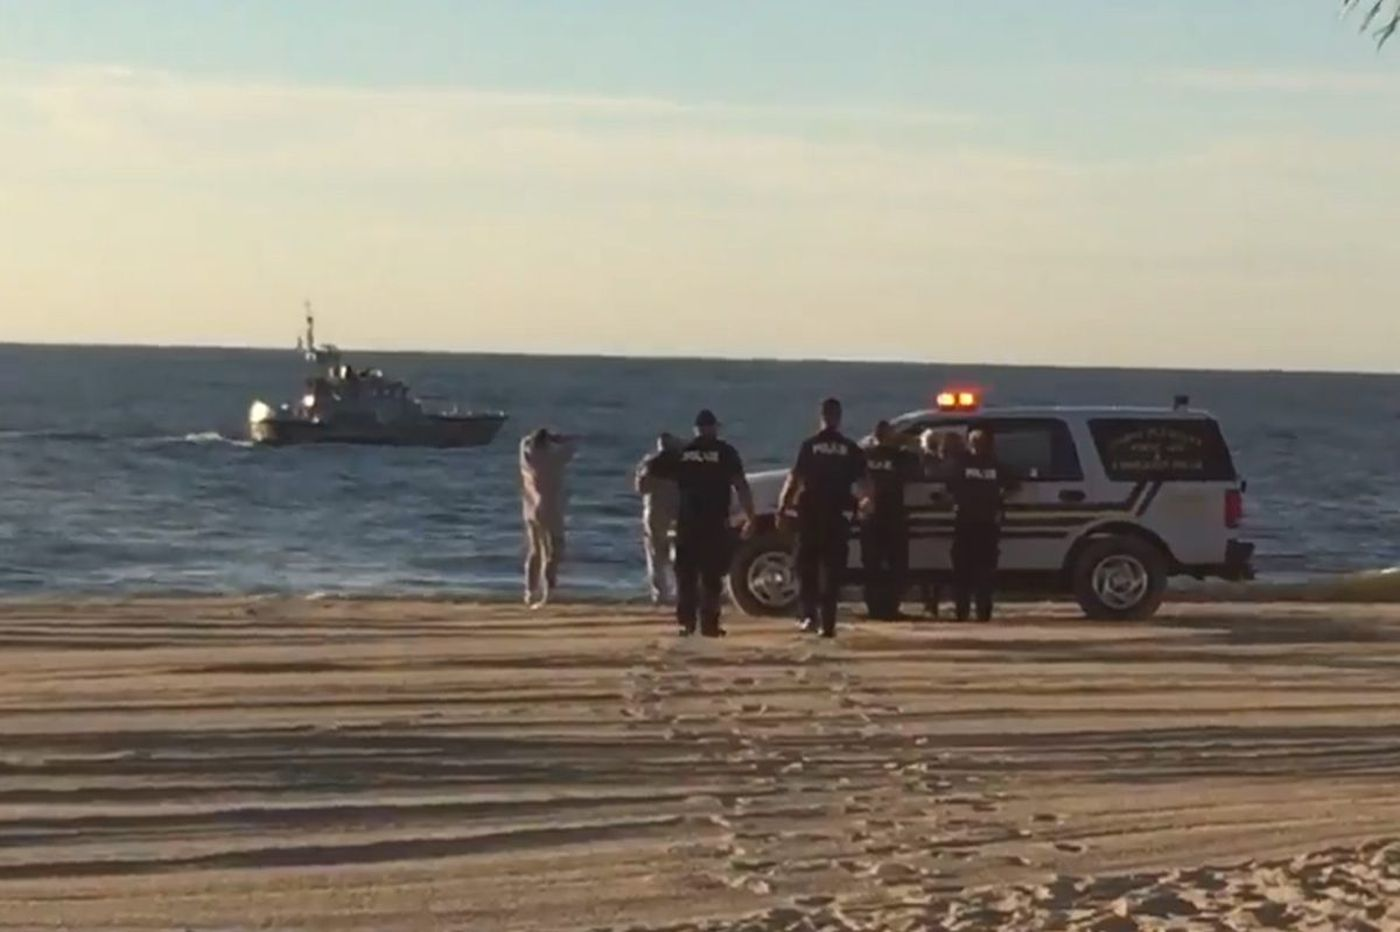 Body found in surf believed to be missing boardwalk worker who disappeared while swimming